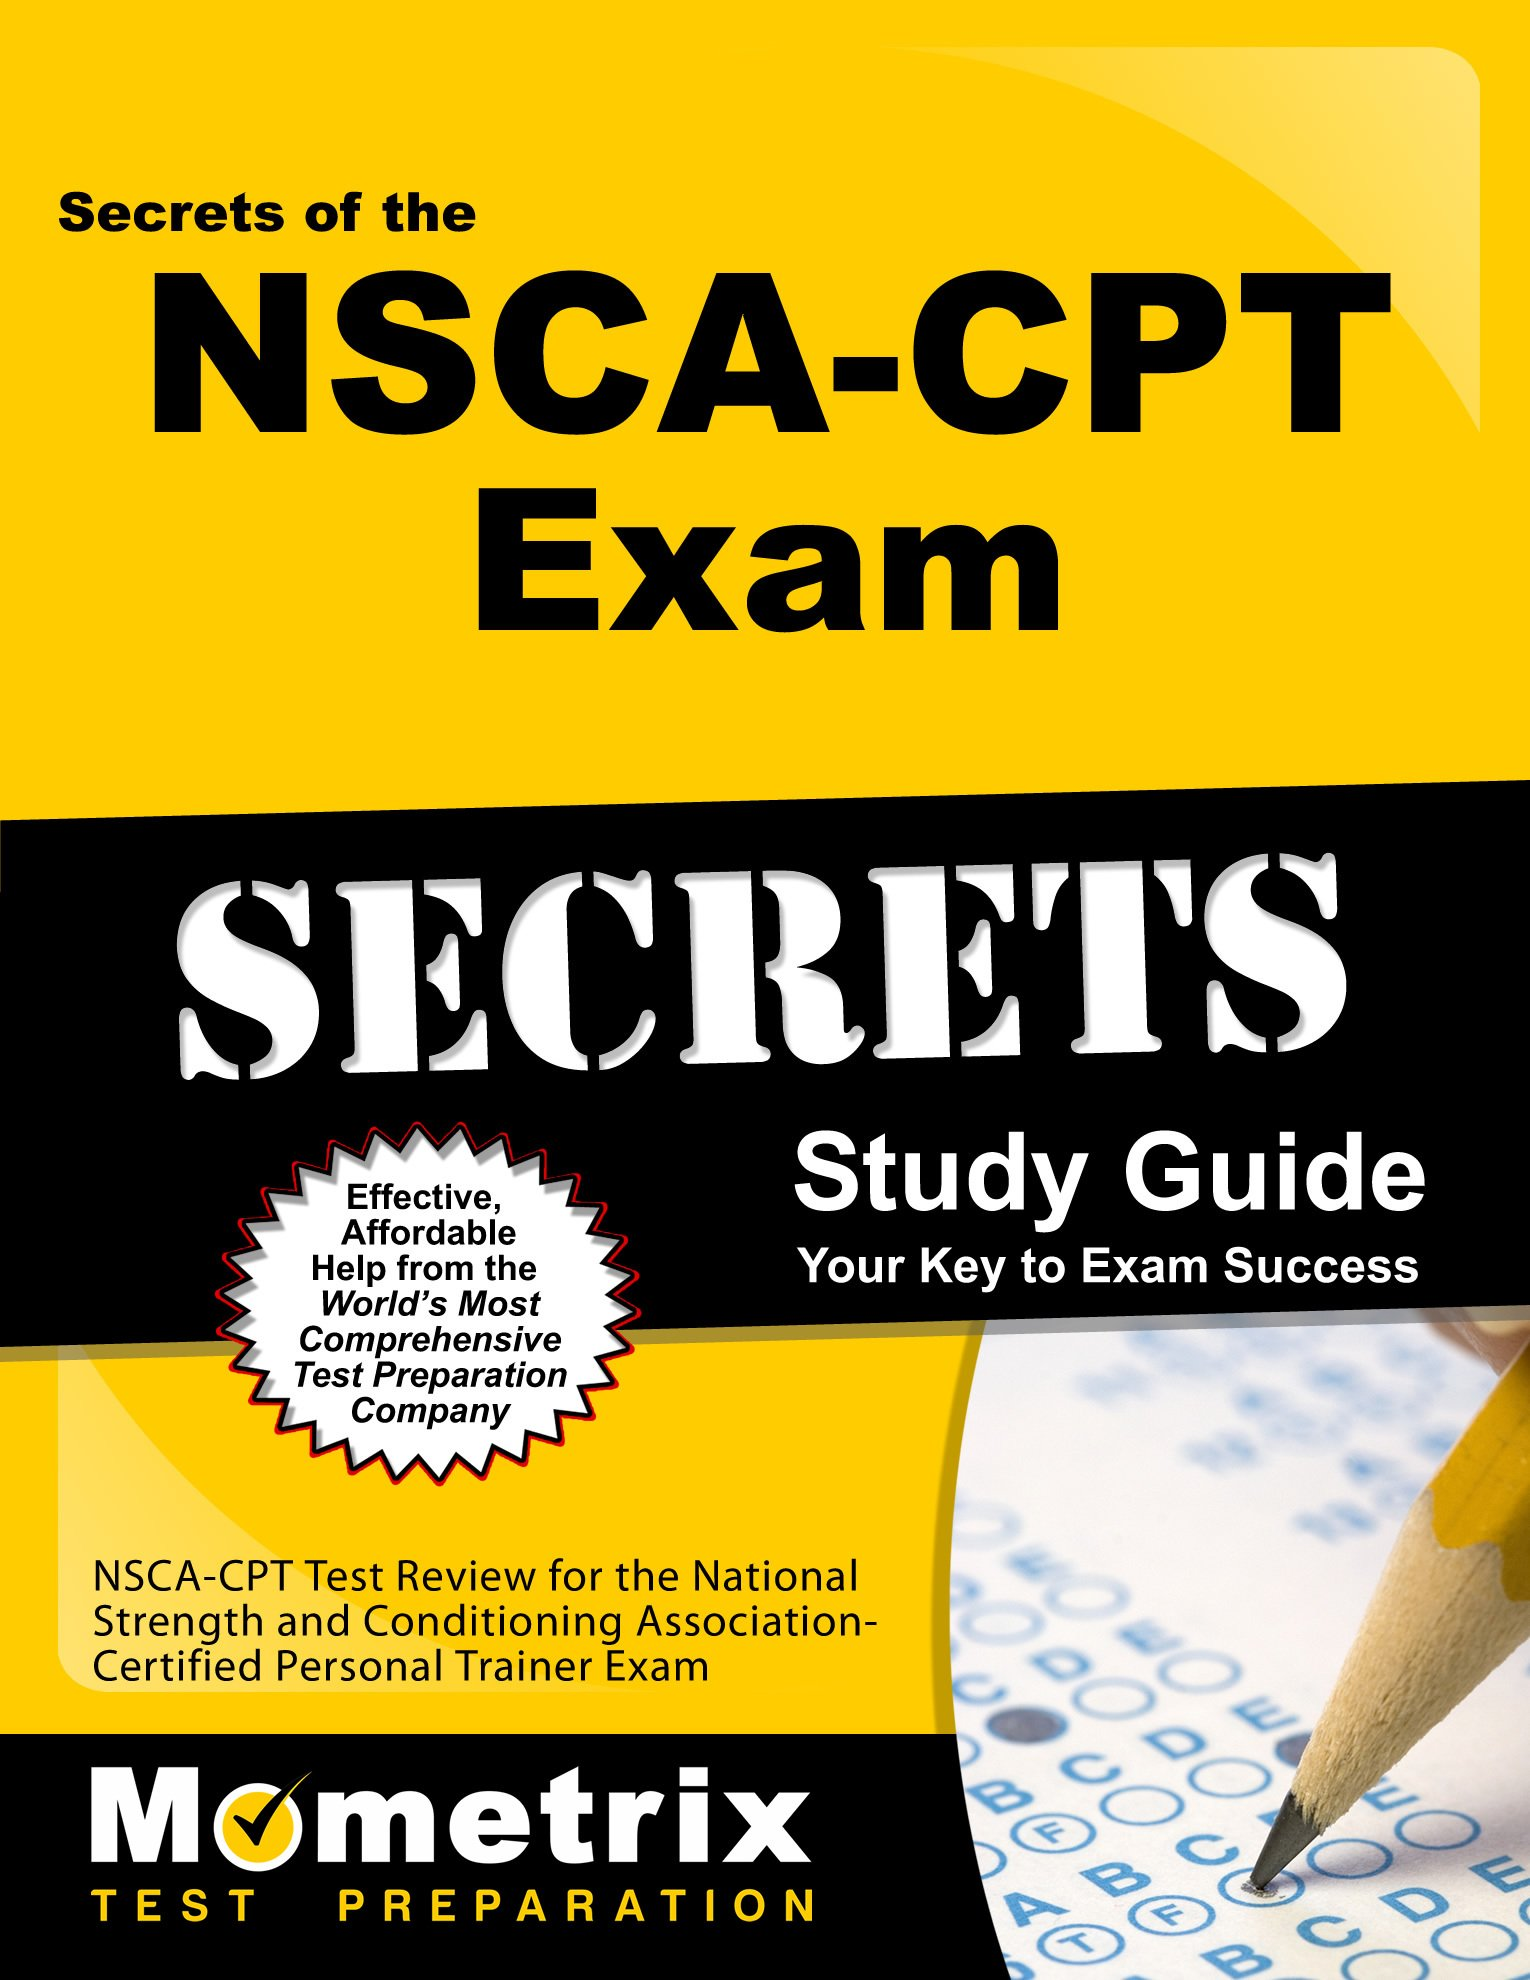 Secrets of the nsca cpt exam study guide nsca cpt test review for secrets of the nsca cpt exam study guide nsca cpt test review for the national strength and conditioning association certified personal trainer exam 1betcityfo Gallery